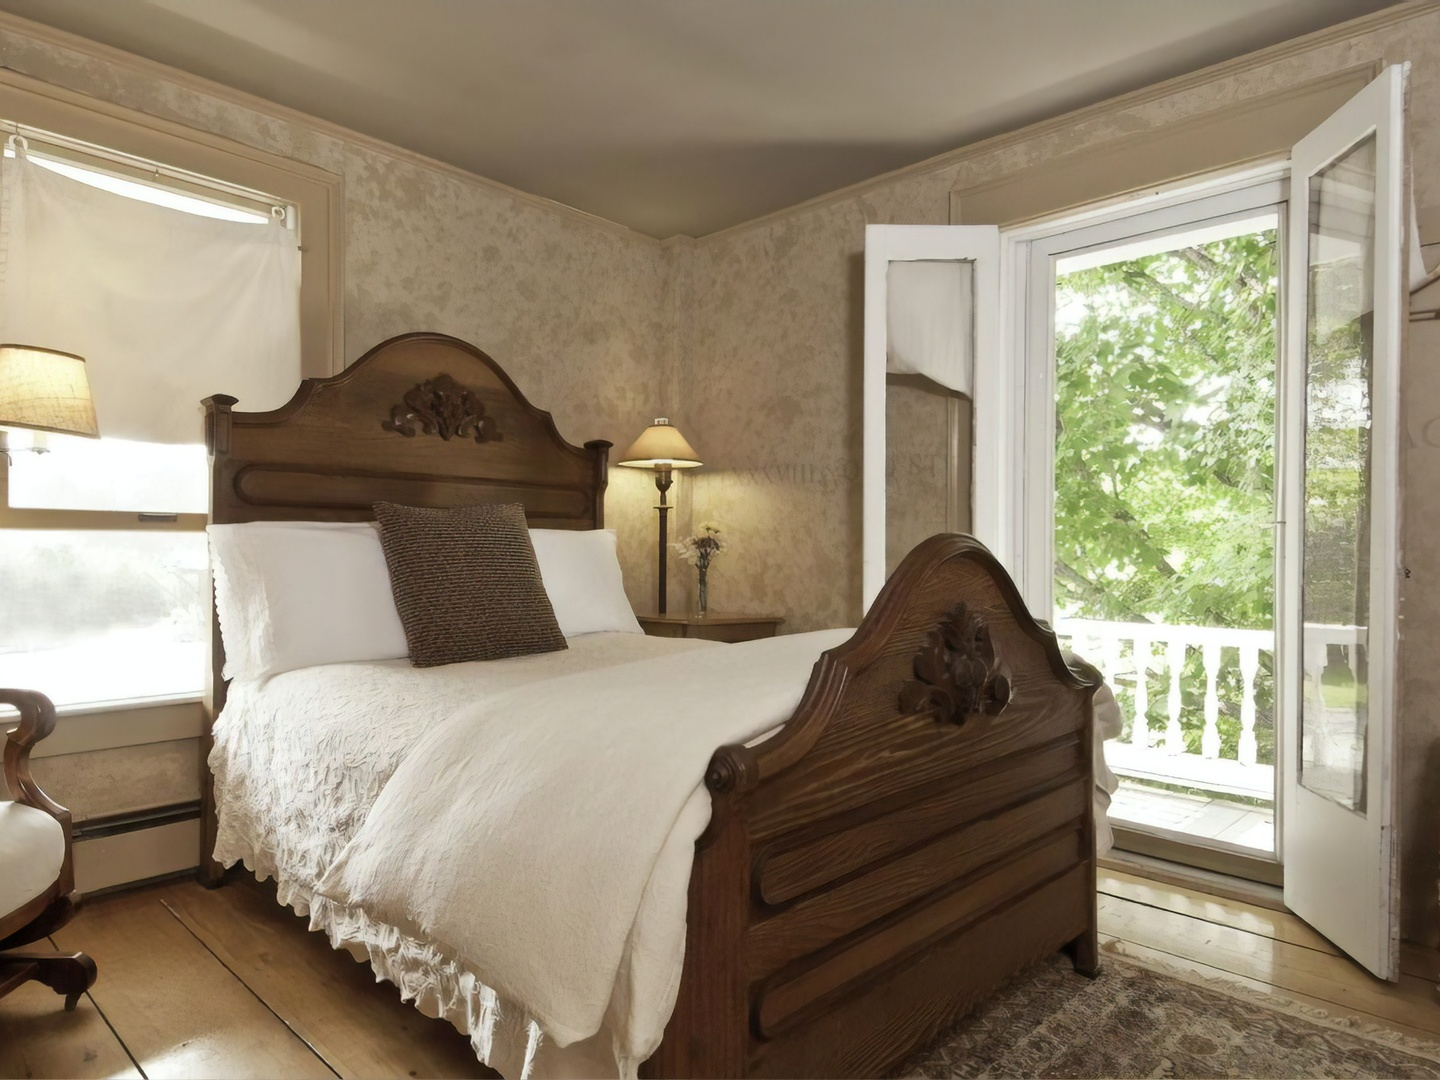 Cavendish Bed and Breakfast